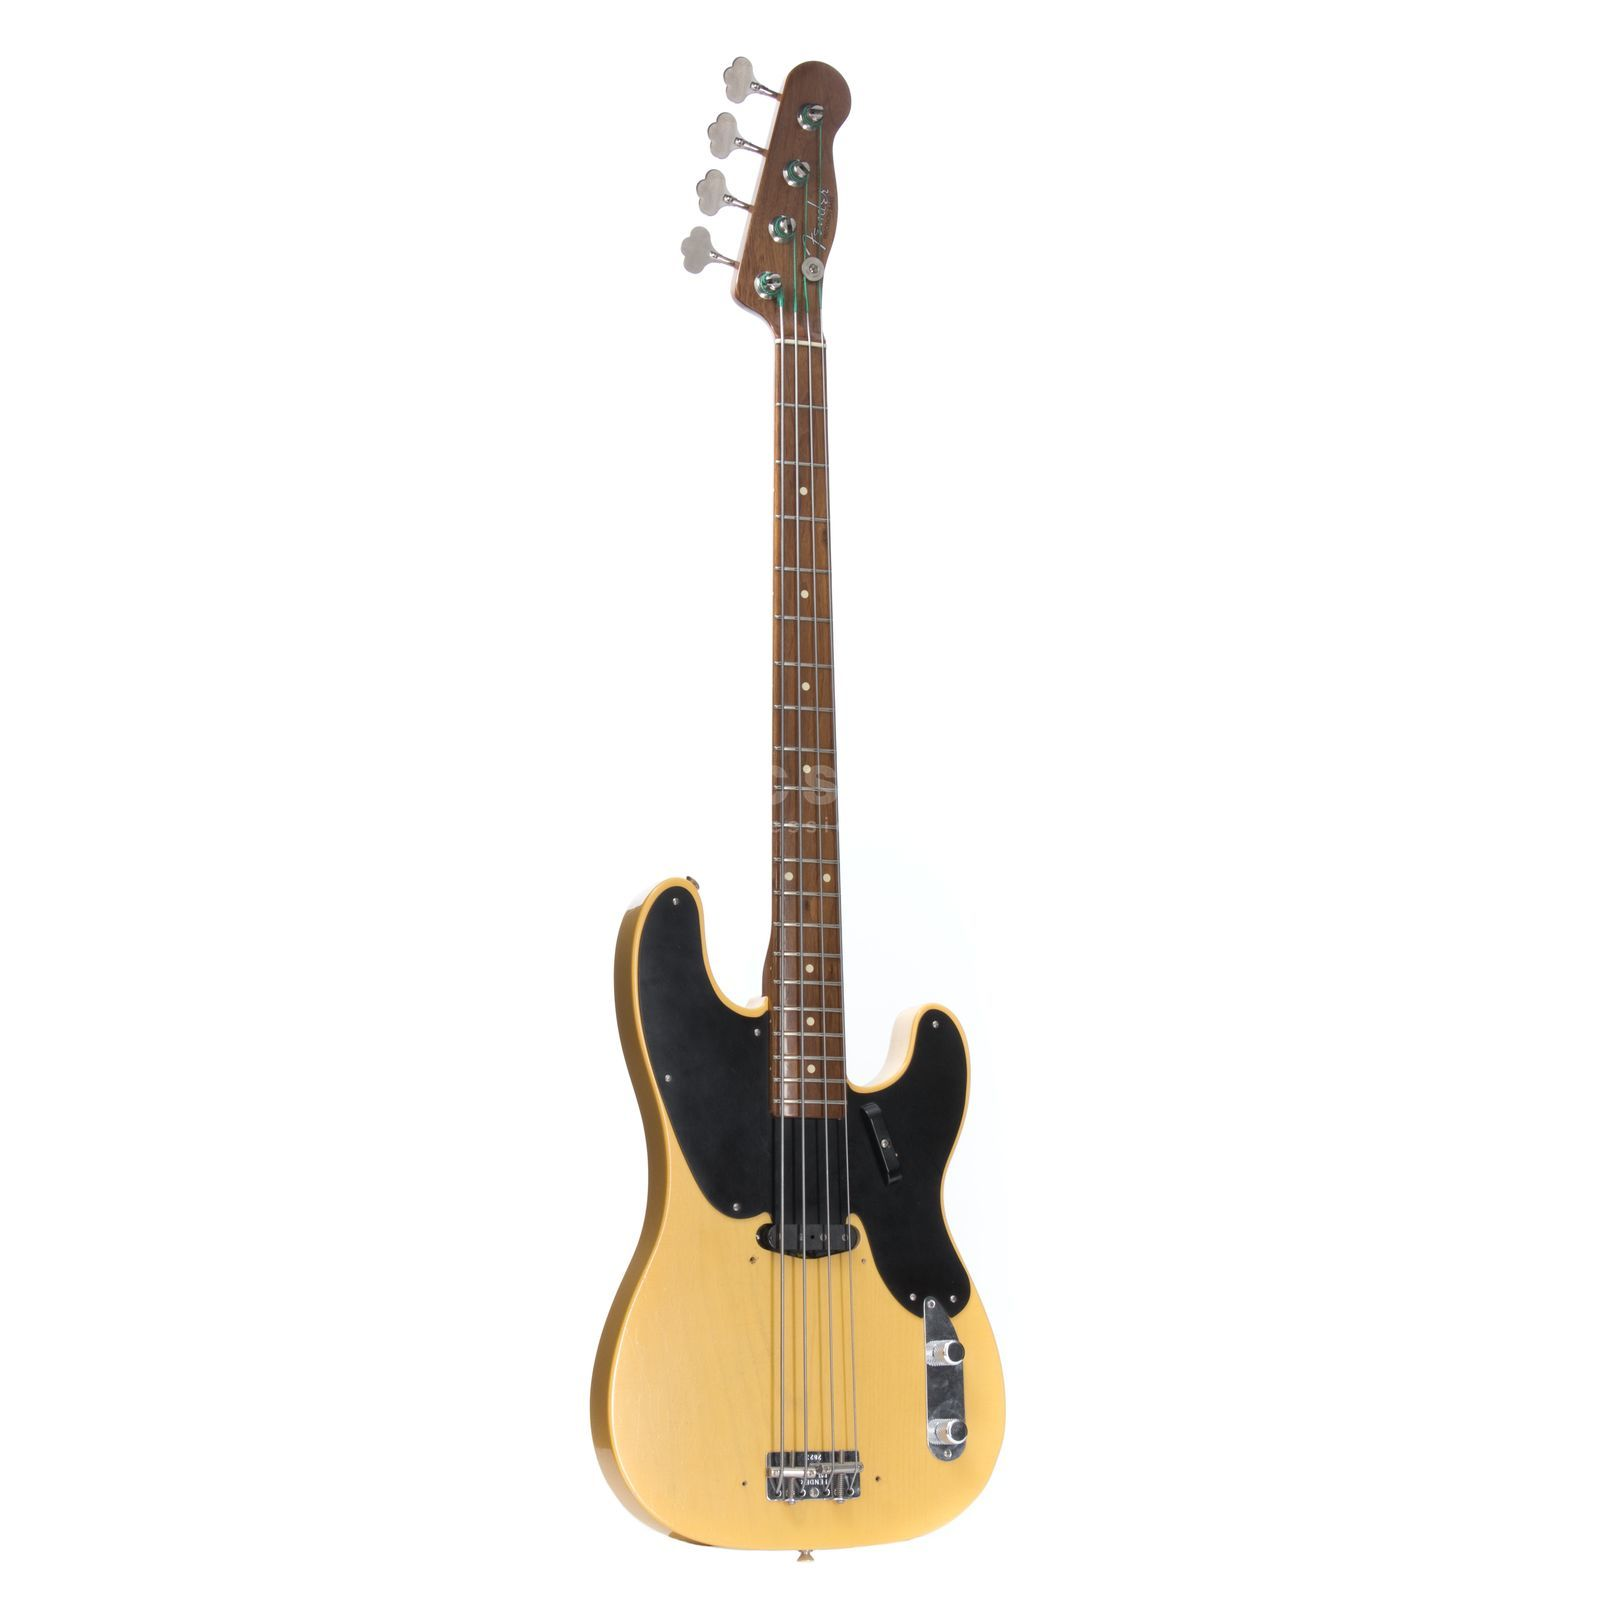 Fender CS '51 P-Bass Walnut Neck NBL Nocaster Blonde #2823 Produktbild